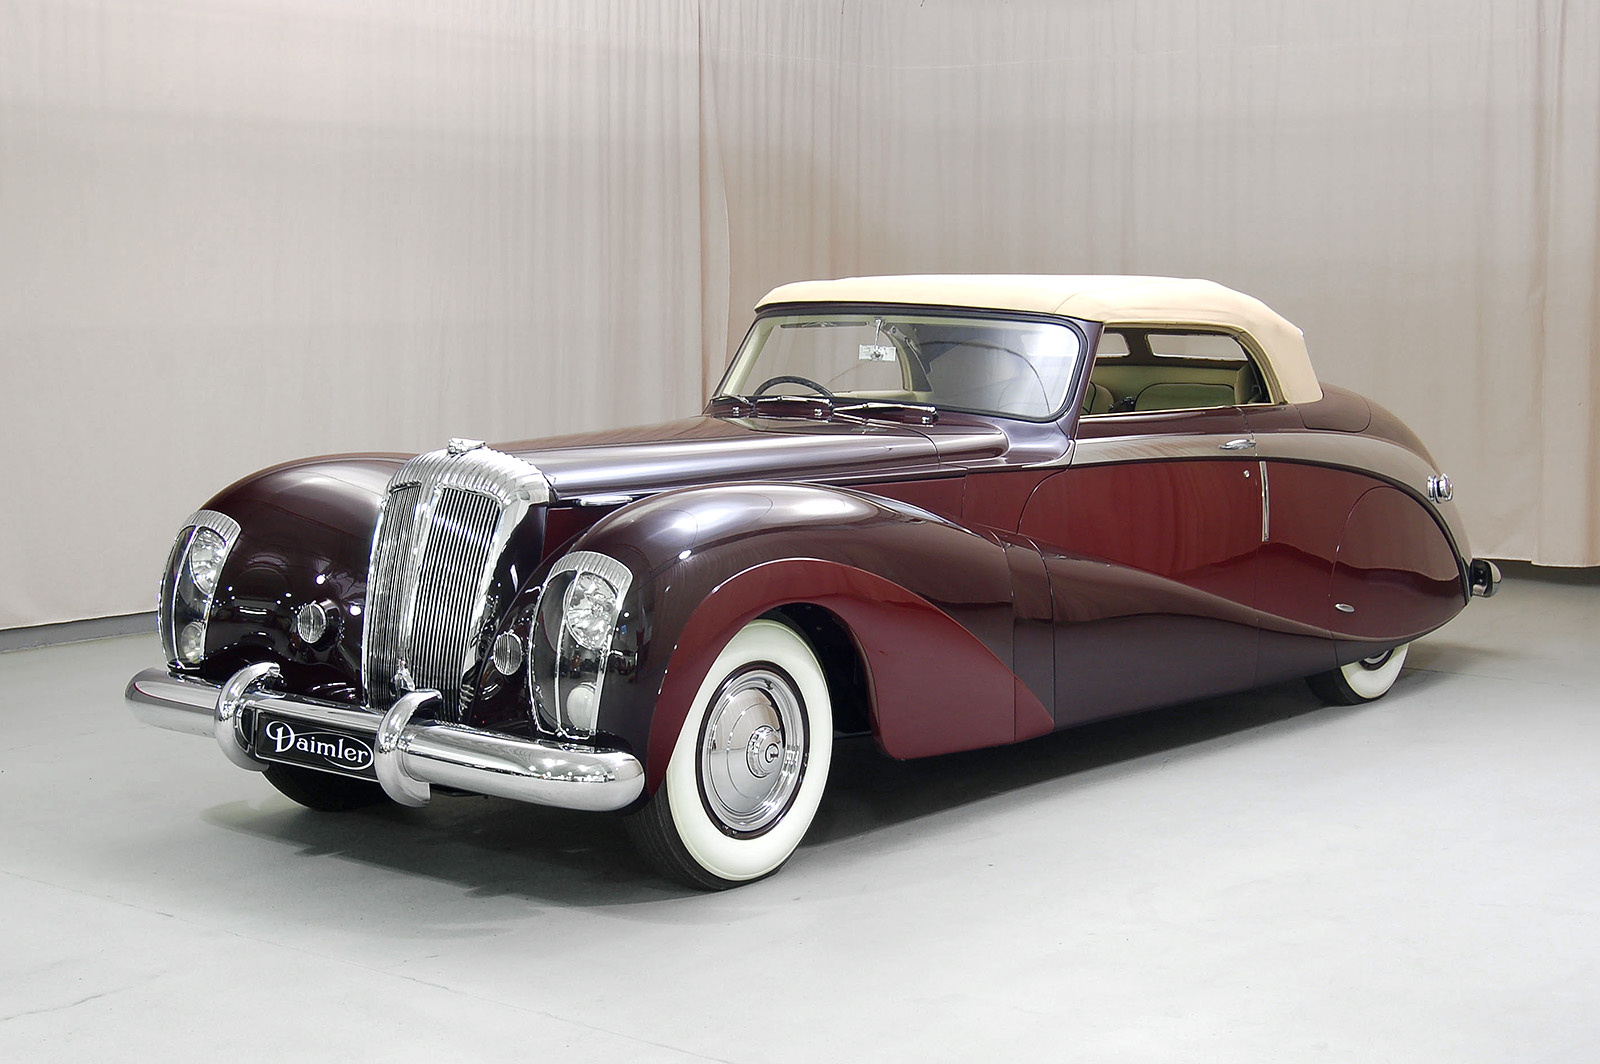 1948 daimler de36 green goddess drophead coupe